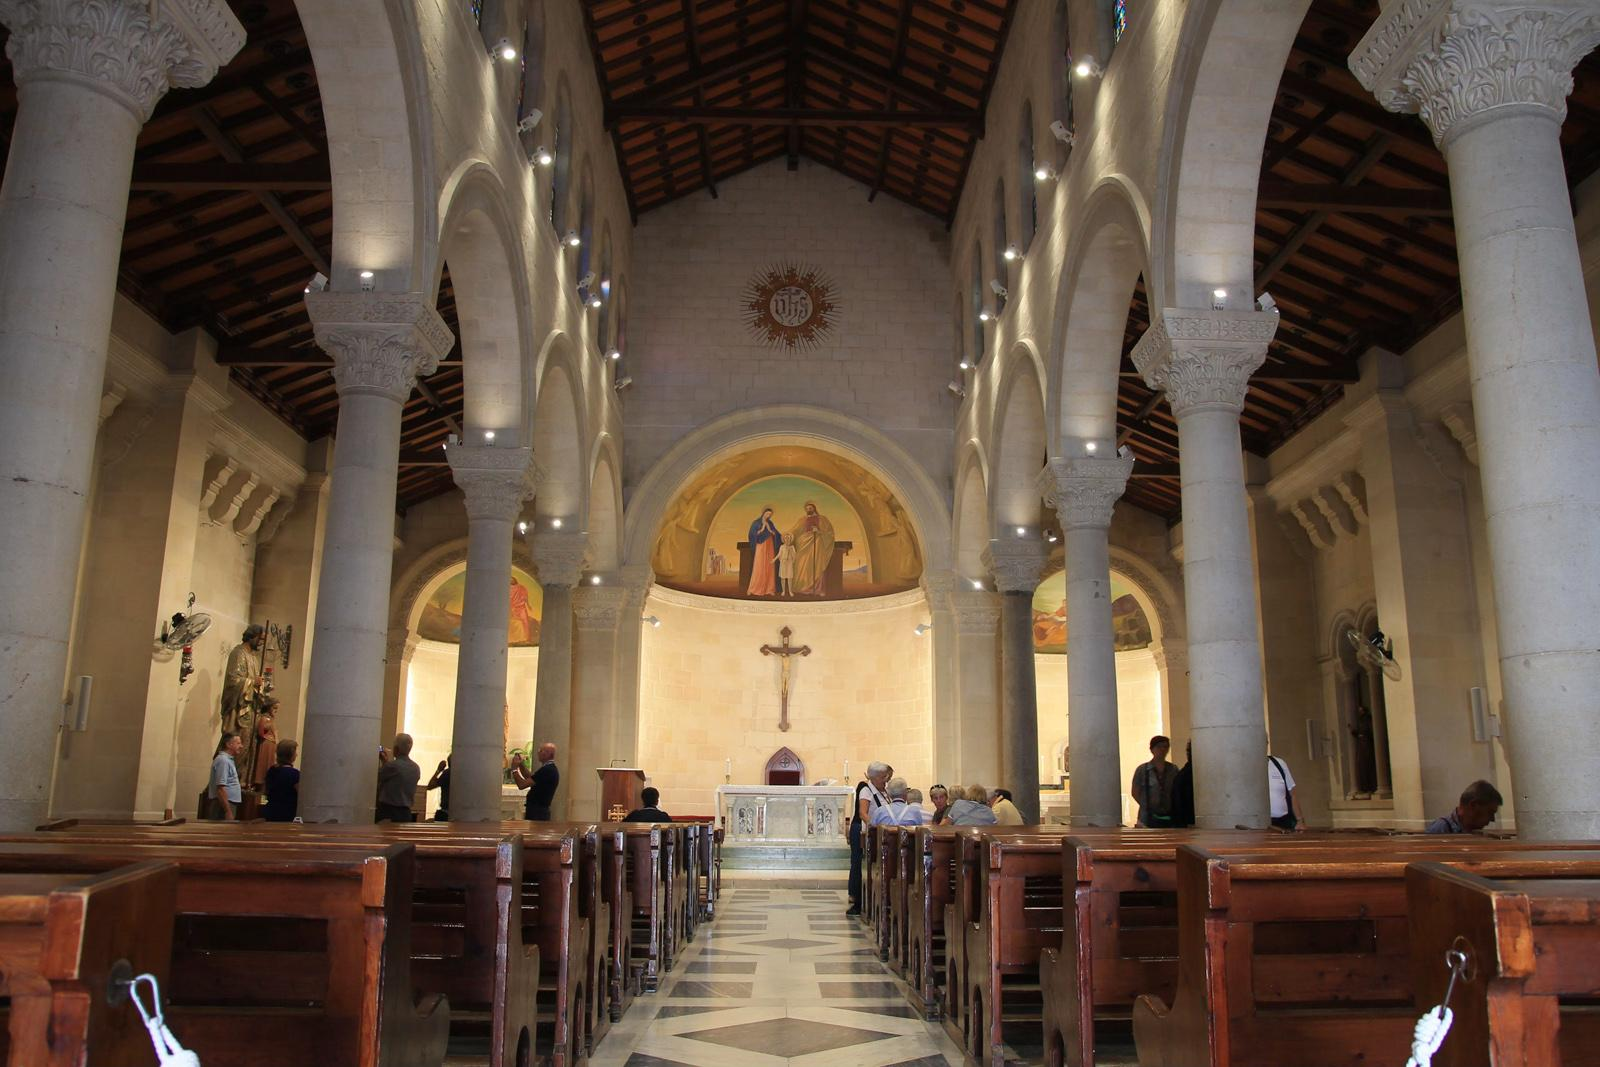 St. Joseph's Church, Nazareth